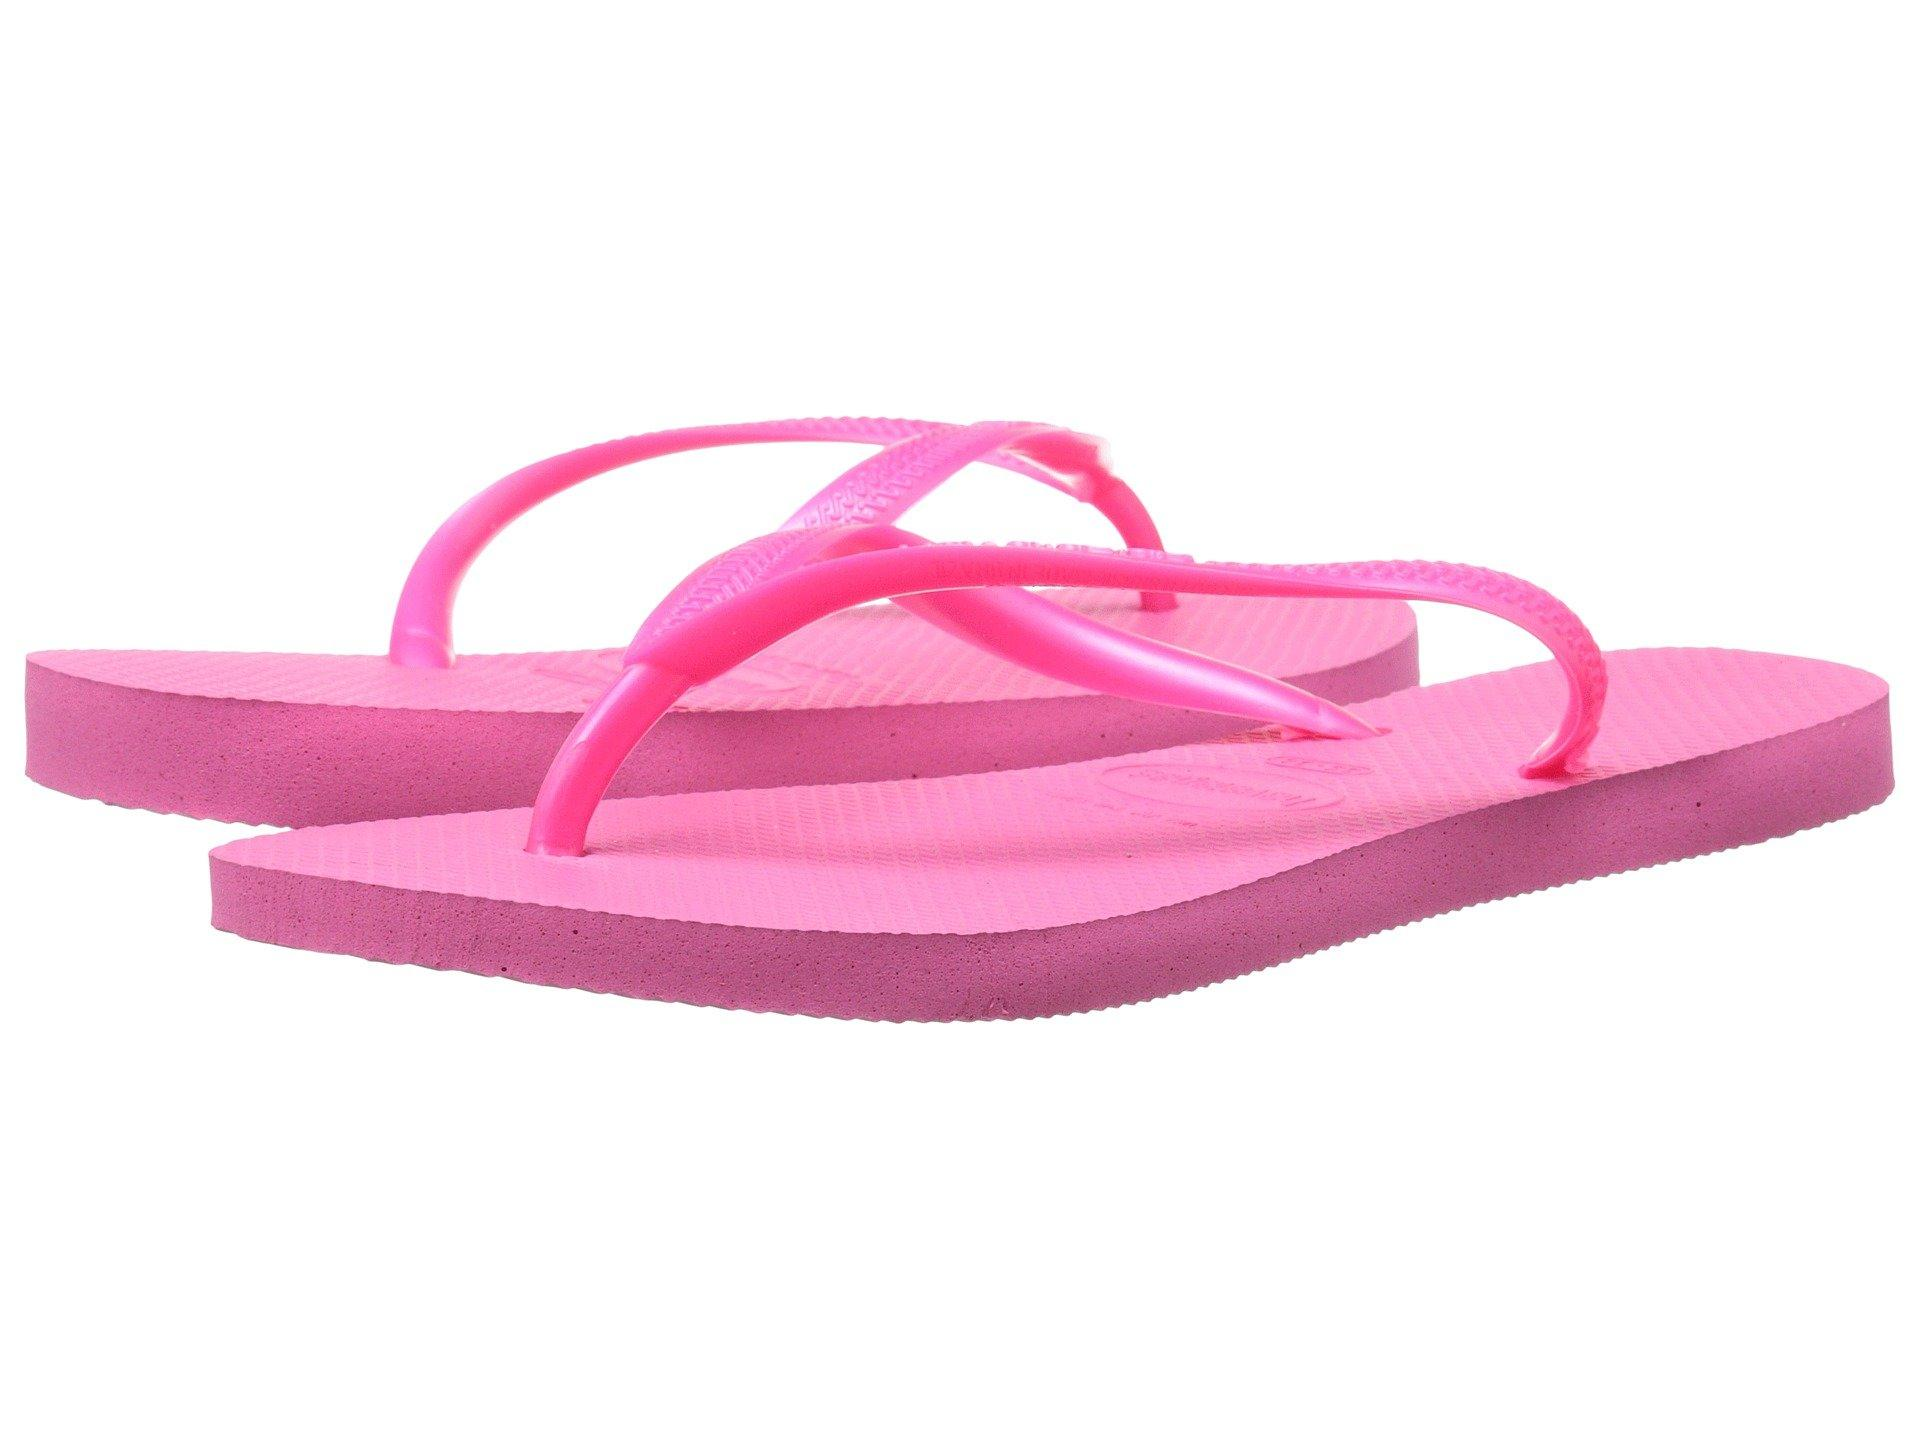 ee623c5df Havaianas Slim Flip Flops In Shocking Pink